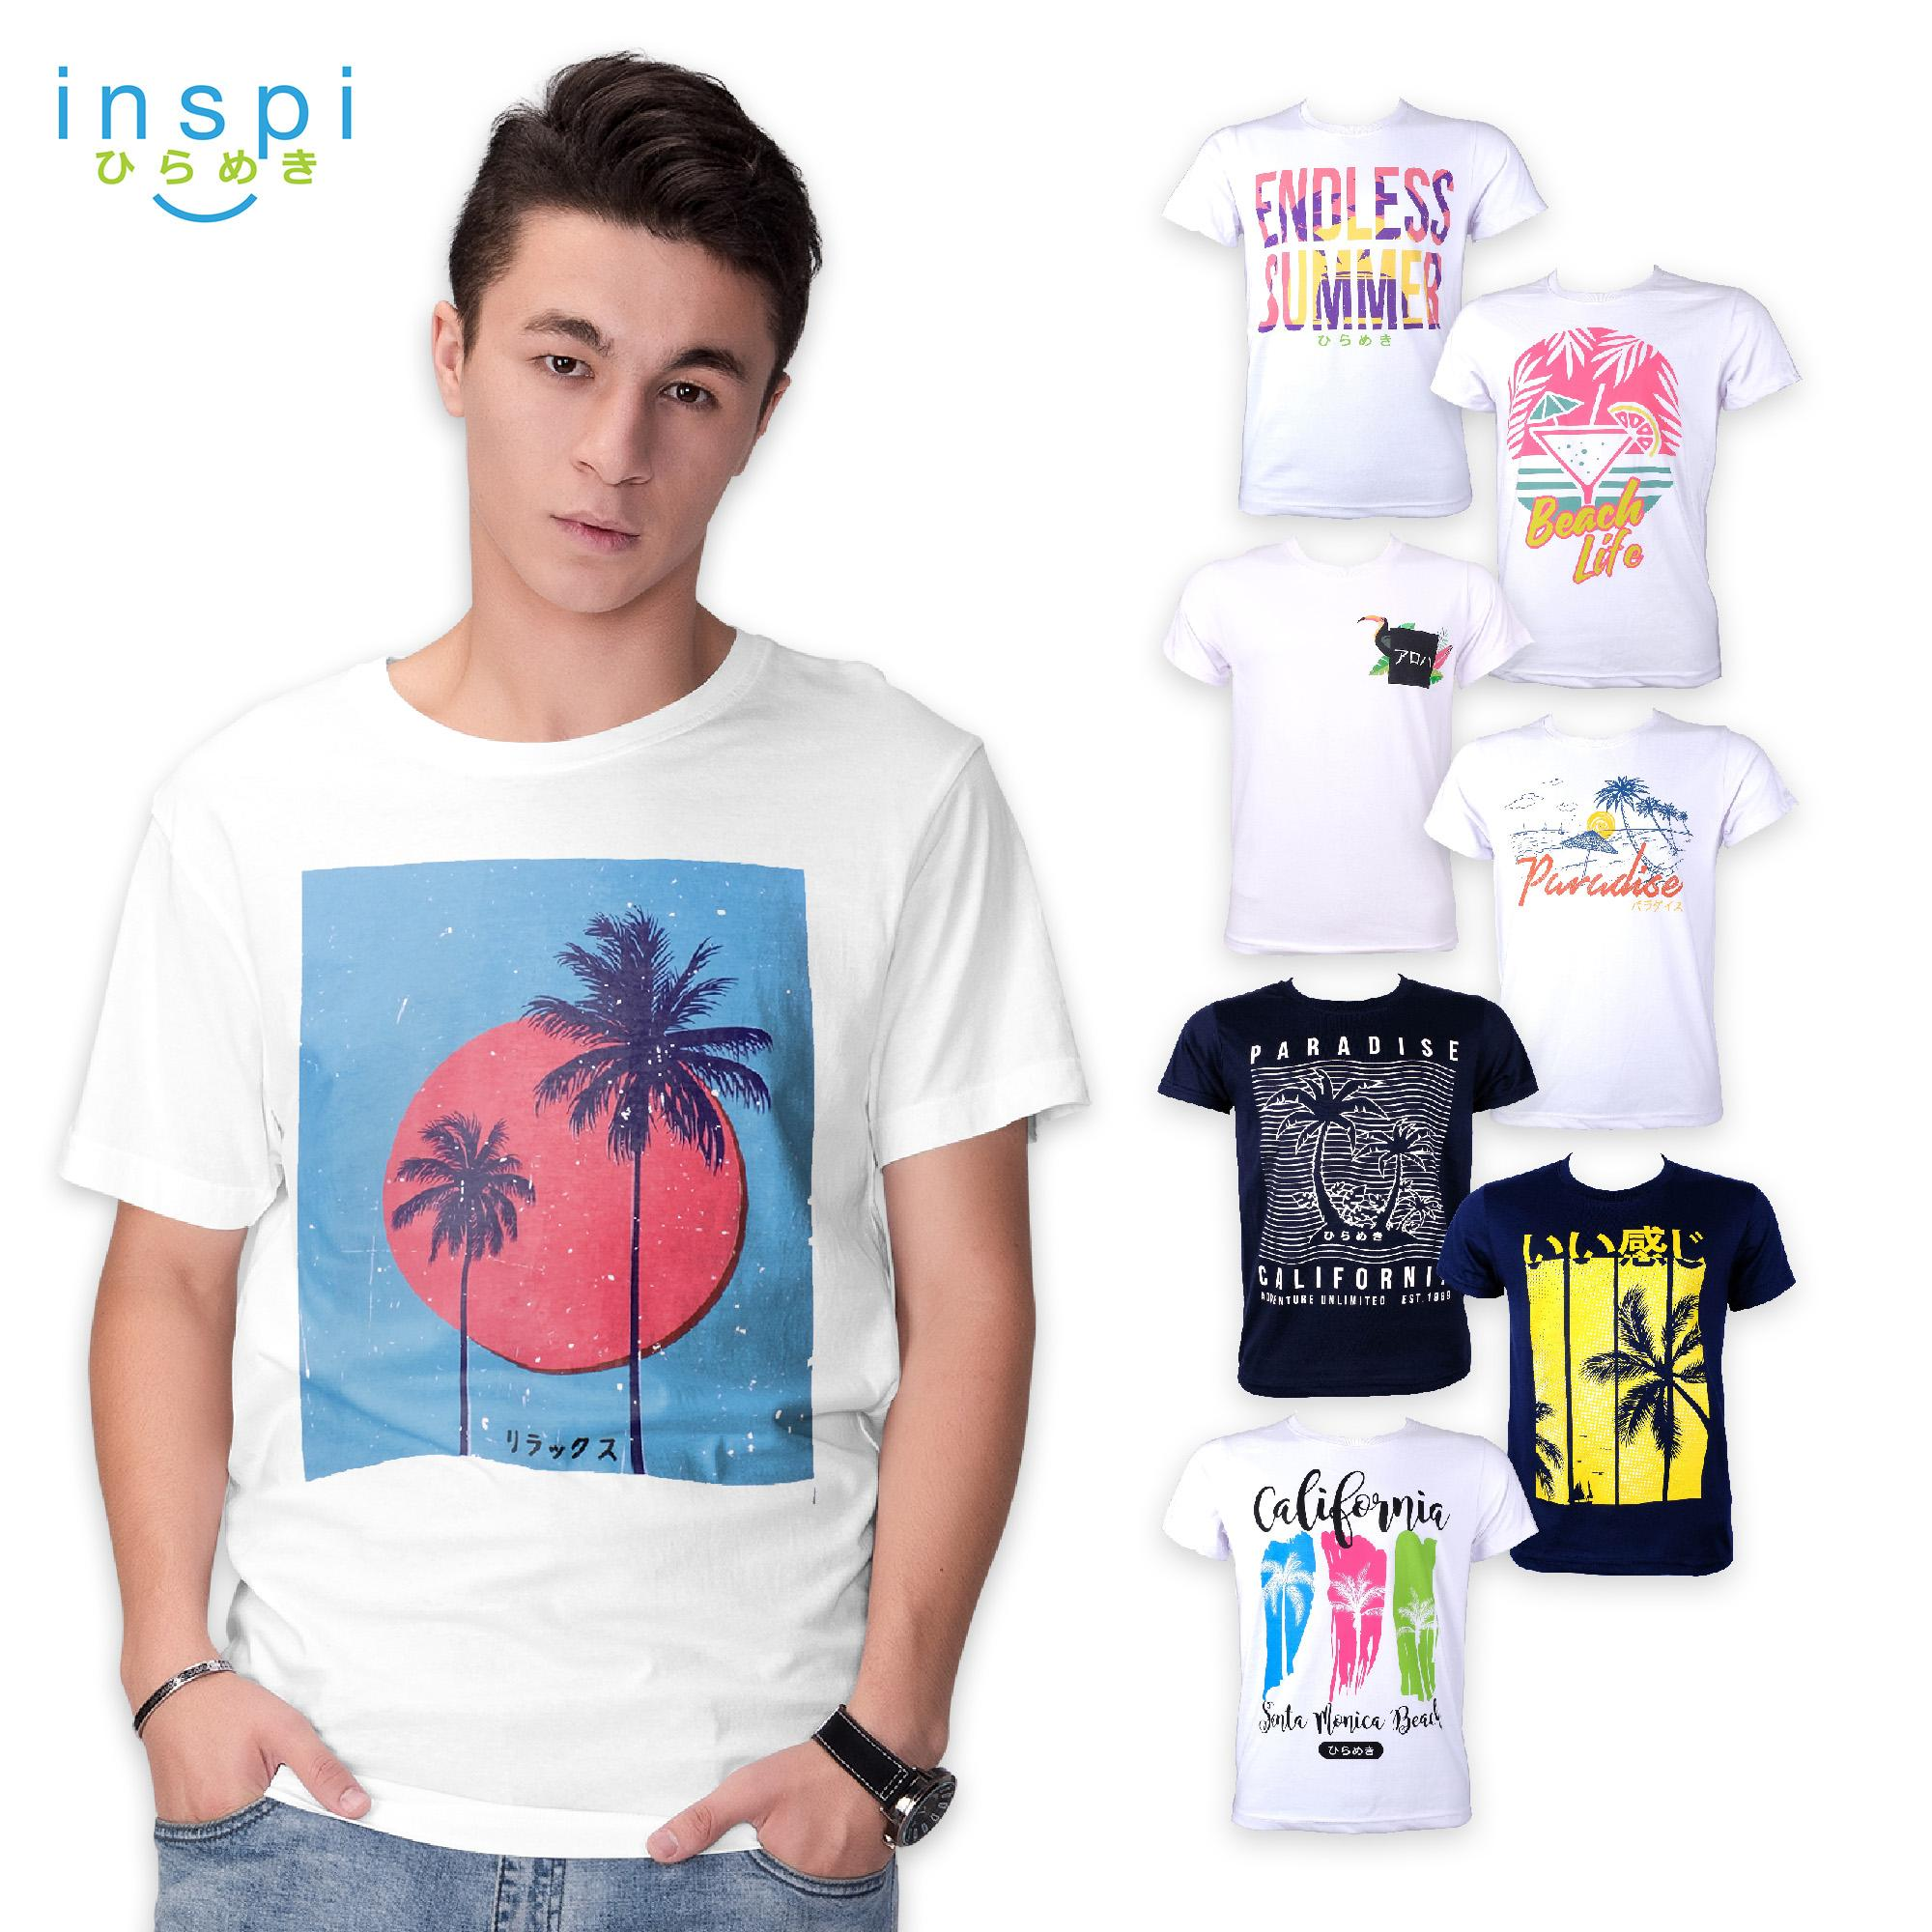 6130bdaf498 INSPI Tees Summer Collection tshirt printed graphic tee Mens t shirt shirts  for men tshirts sale